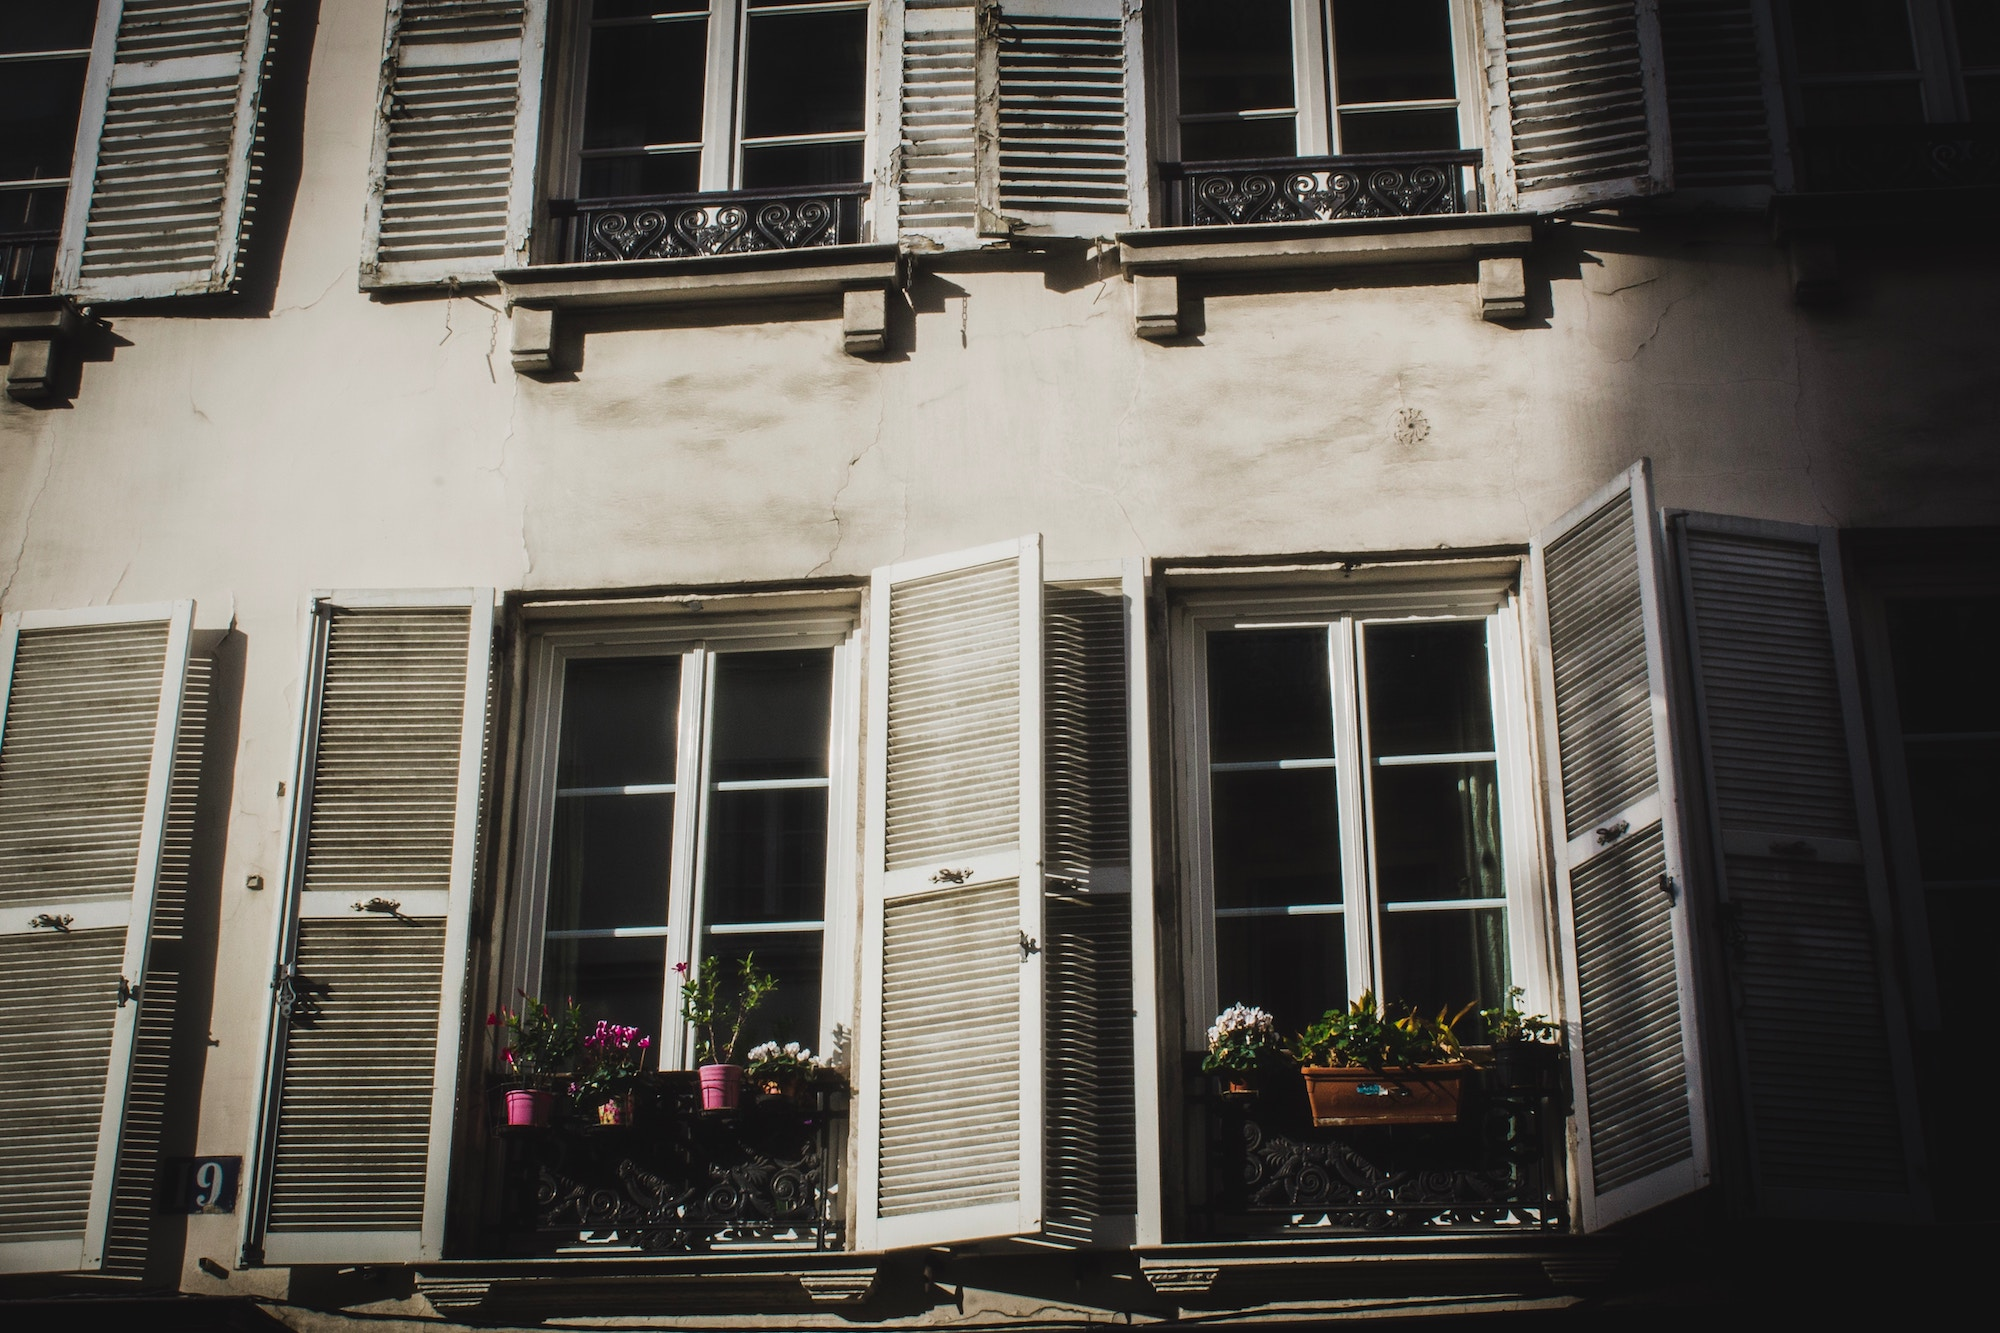 Paris podcast host Oliver Gee's tips on how to see Paris, and where to stay like an apartment rental with quaint windows lined with plants and white shutters.